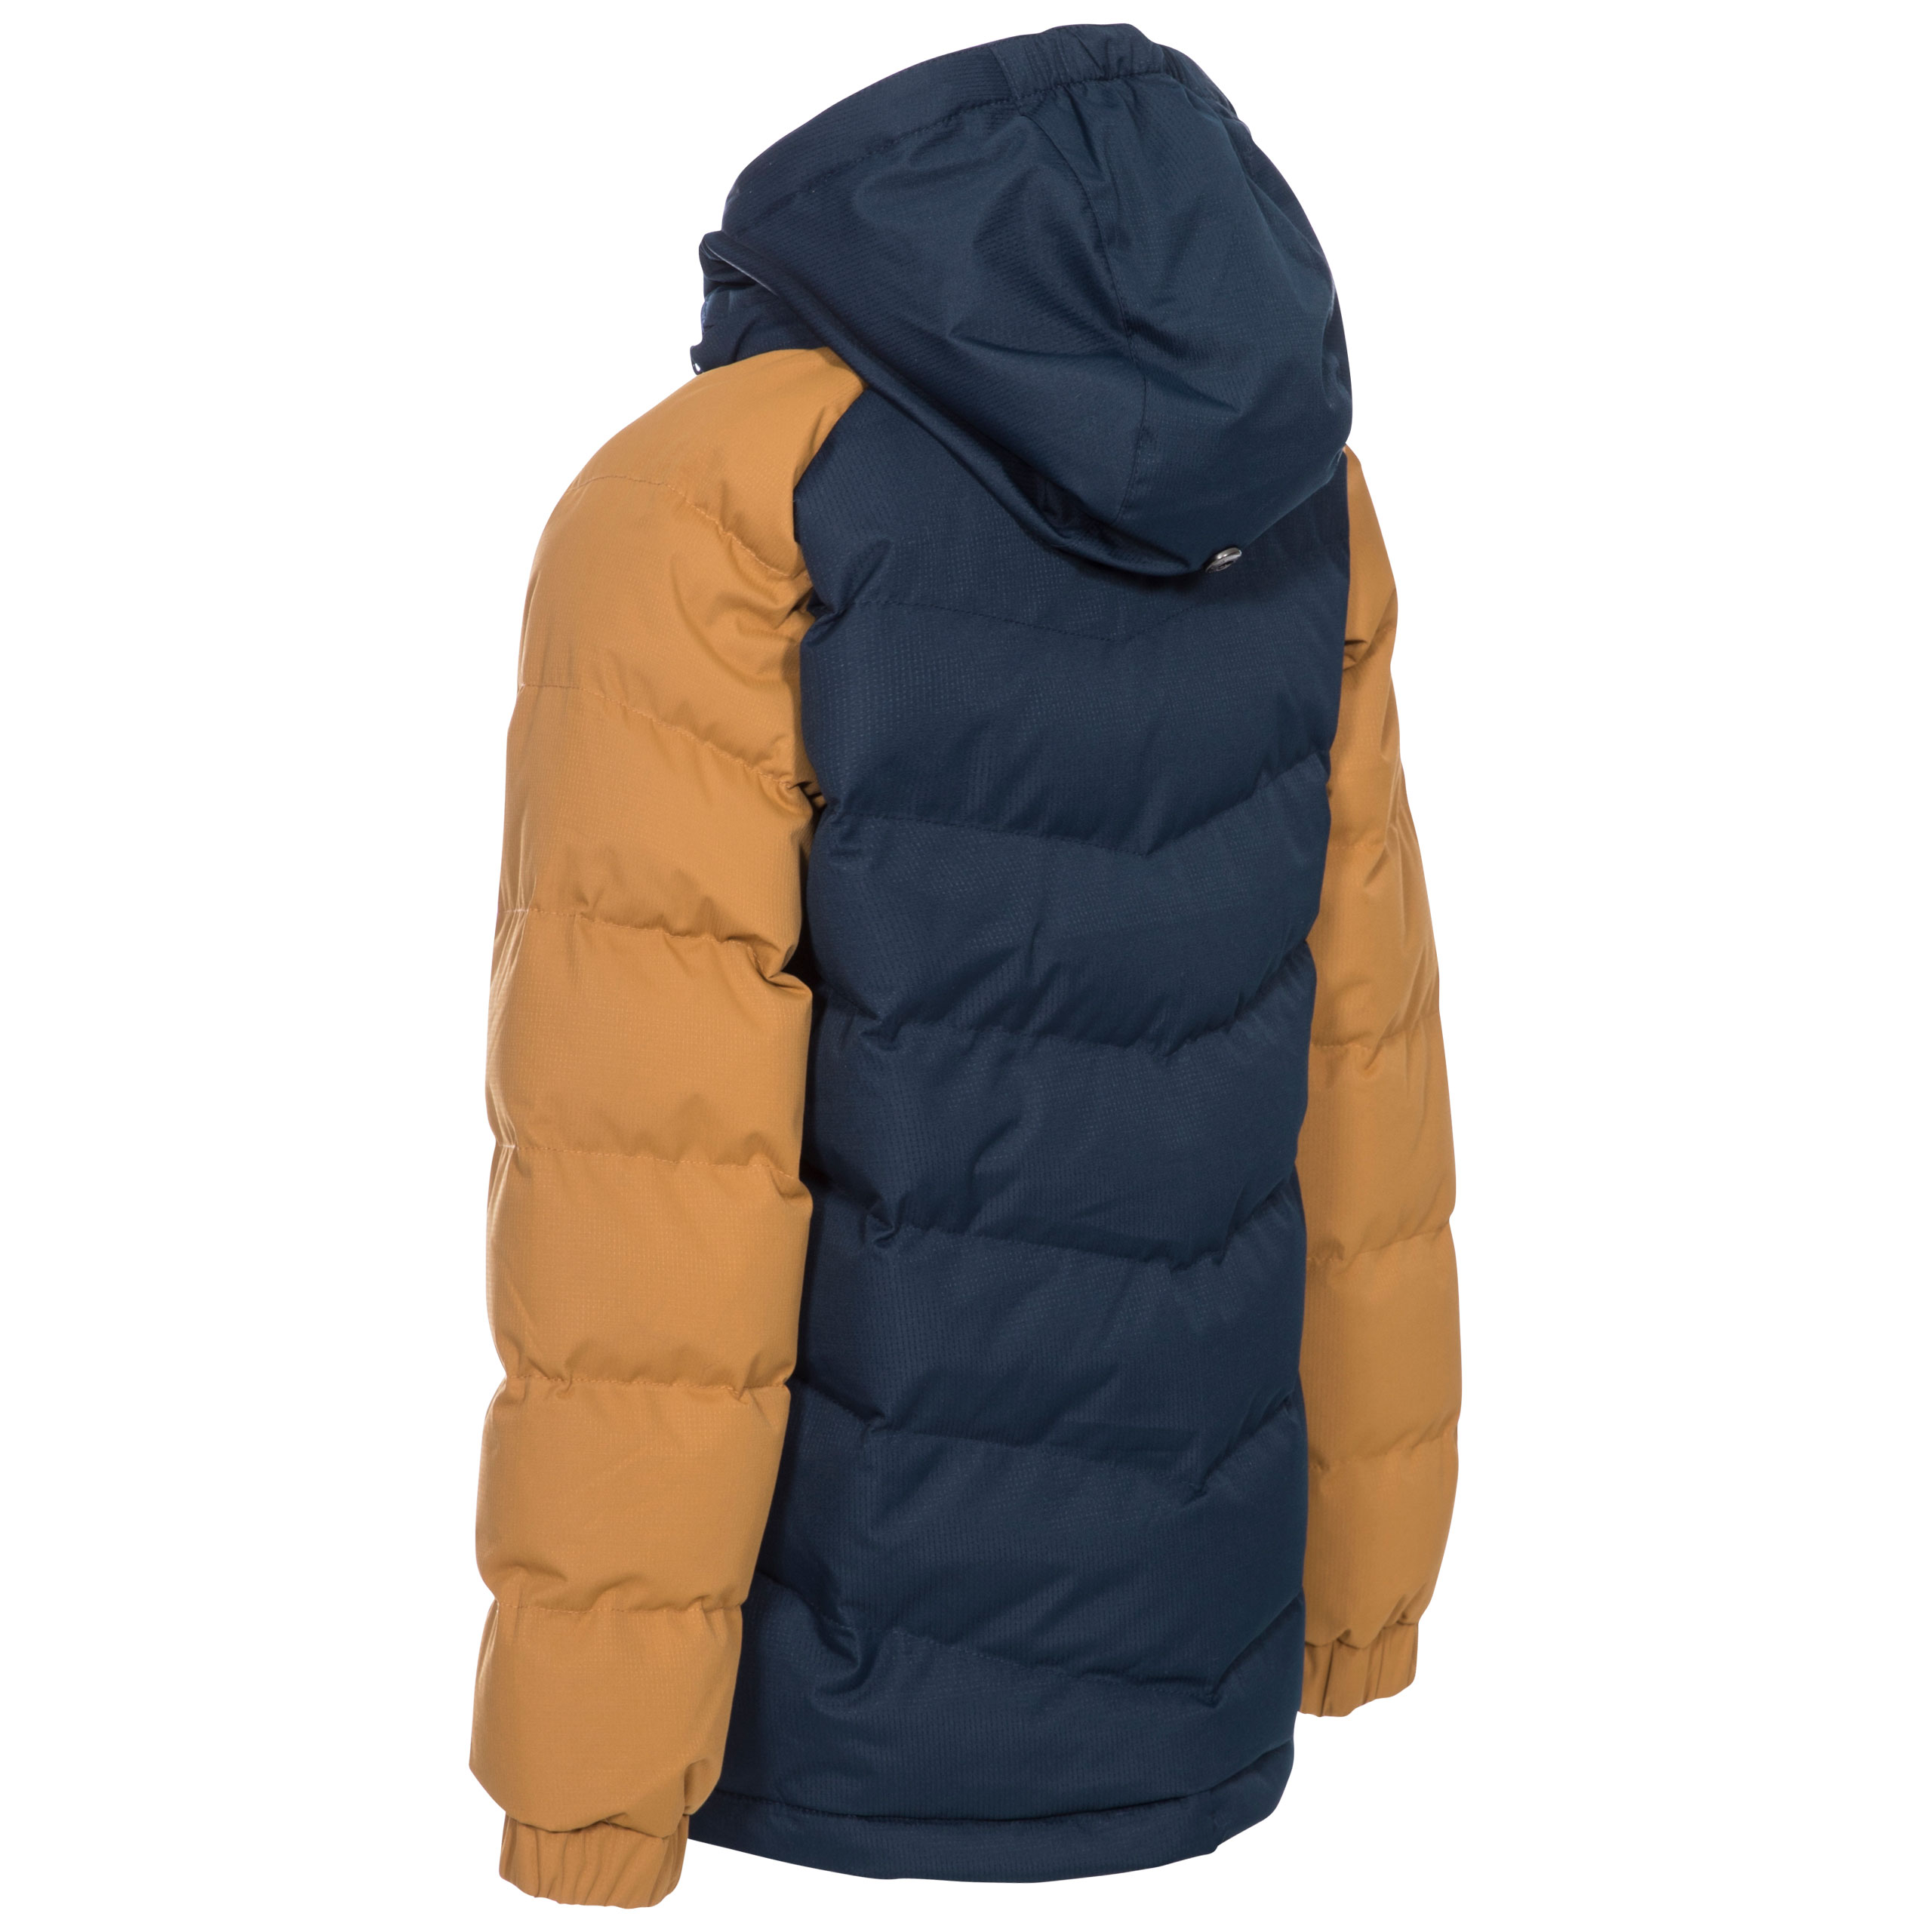 Trespass-Sidespin-Boys-Blue-Water-Resistant-Jacket-Padded-School-Insulated-Coat thumbnail 12